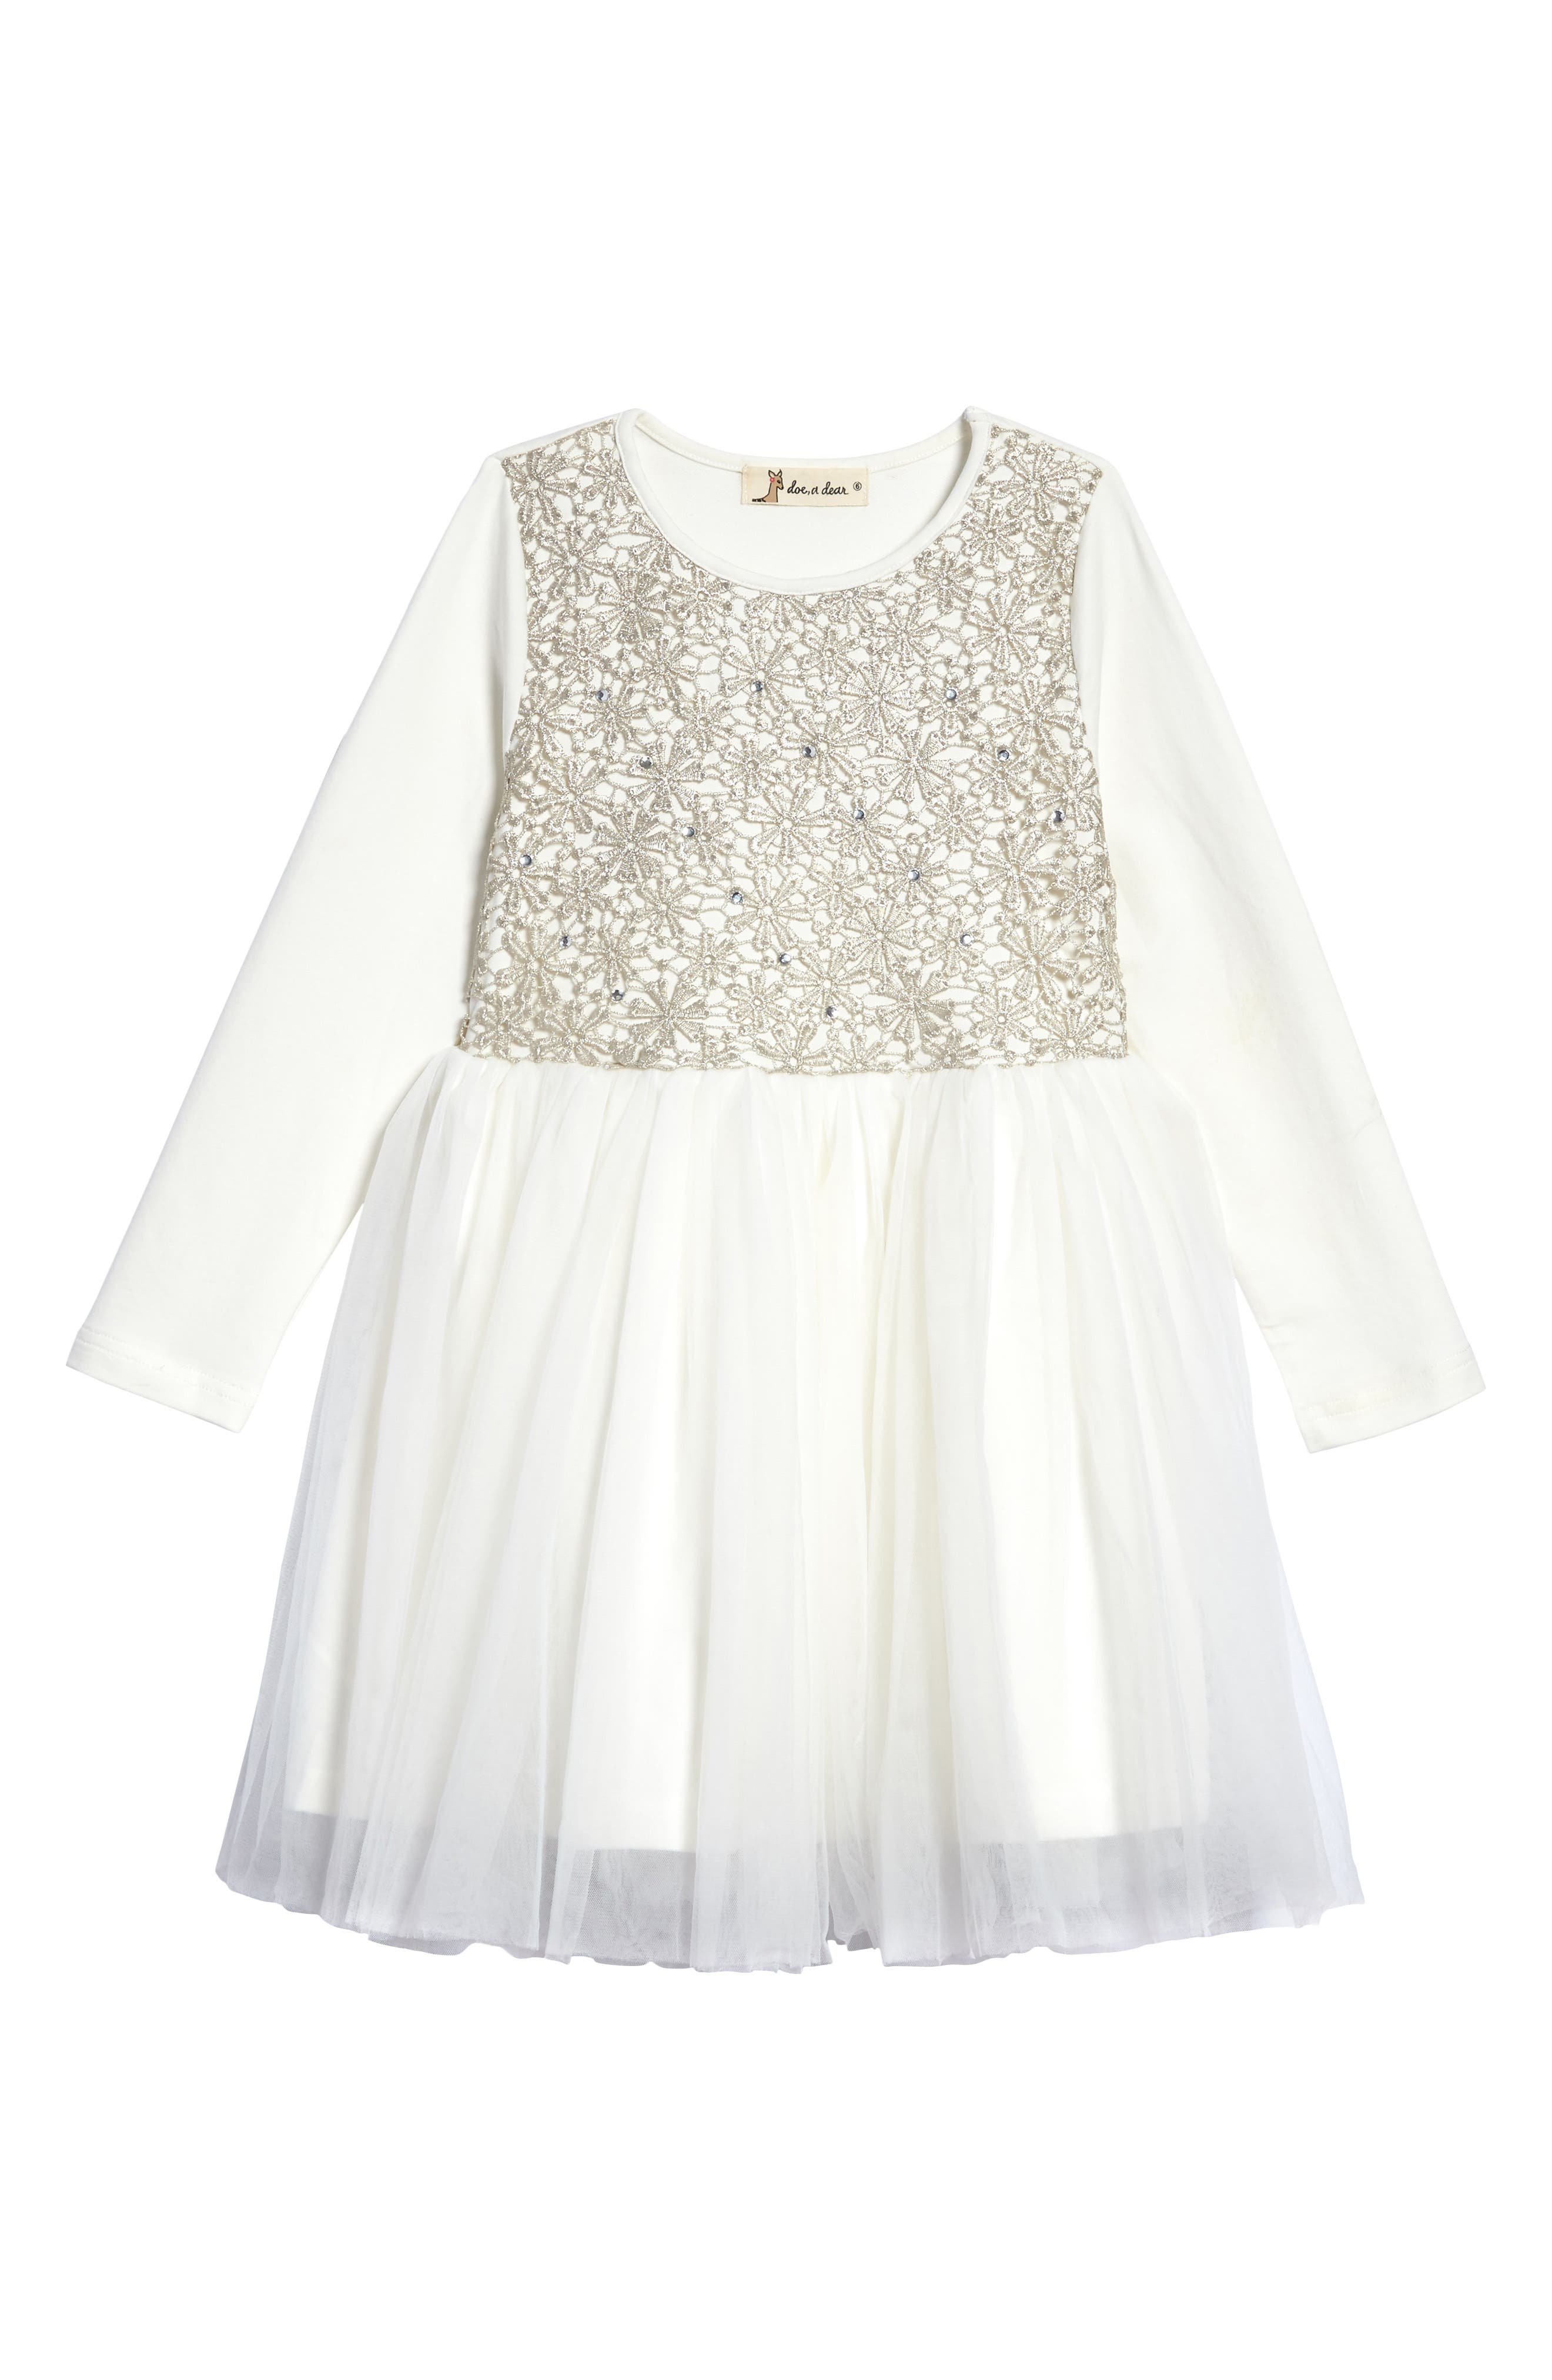 Tulle Party Dress,                             Main thumbnail 1, color,                             900